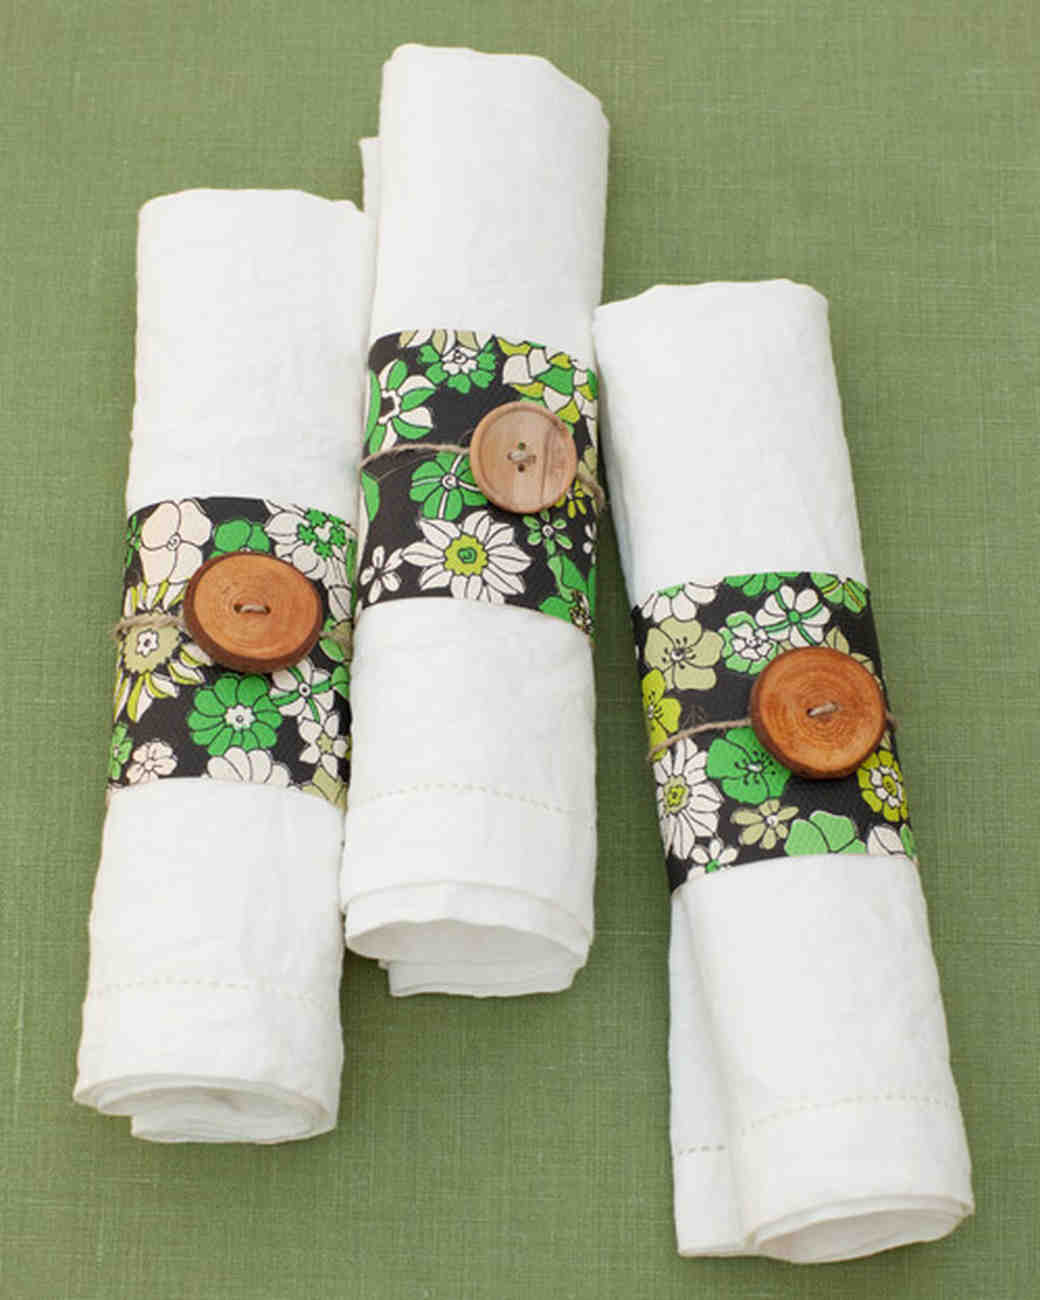 Personalized napkin ideas martha stewart weddings wallpaper napkin rings solutioingenieria Images